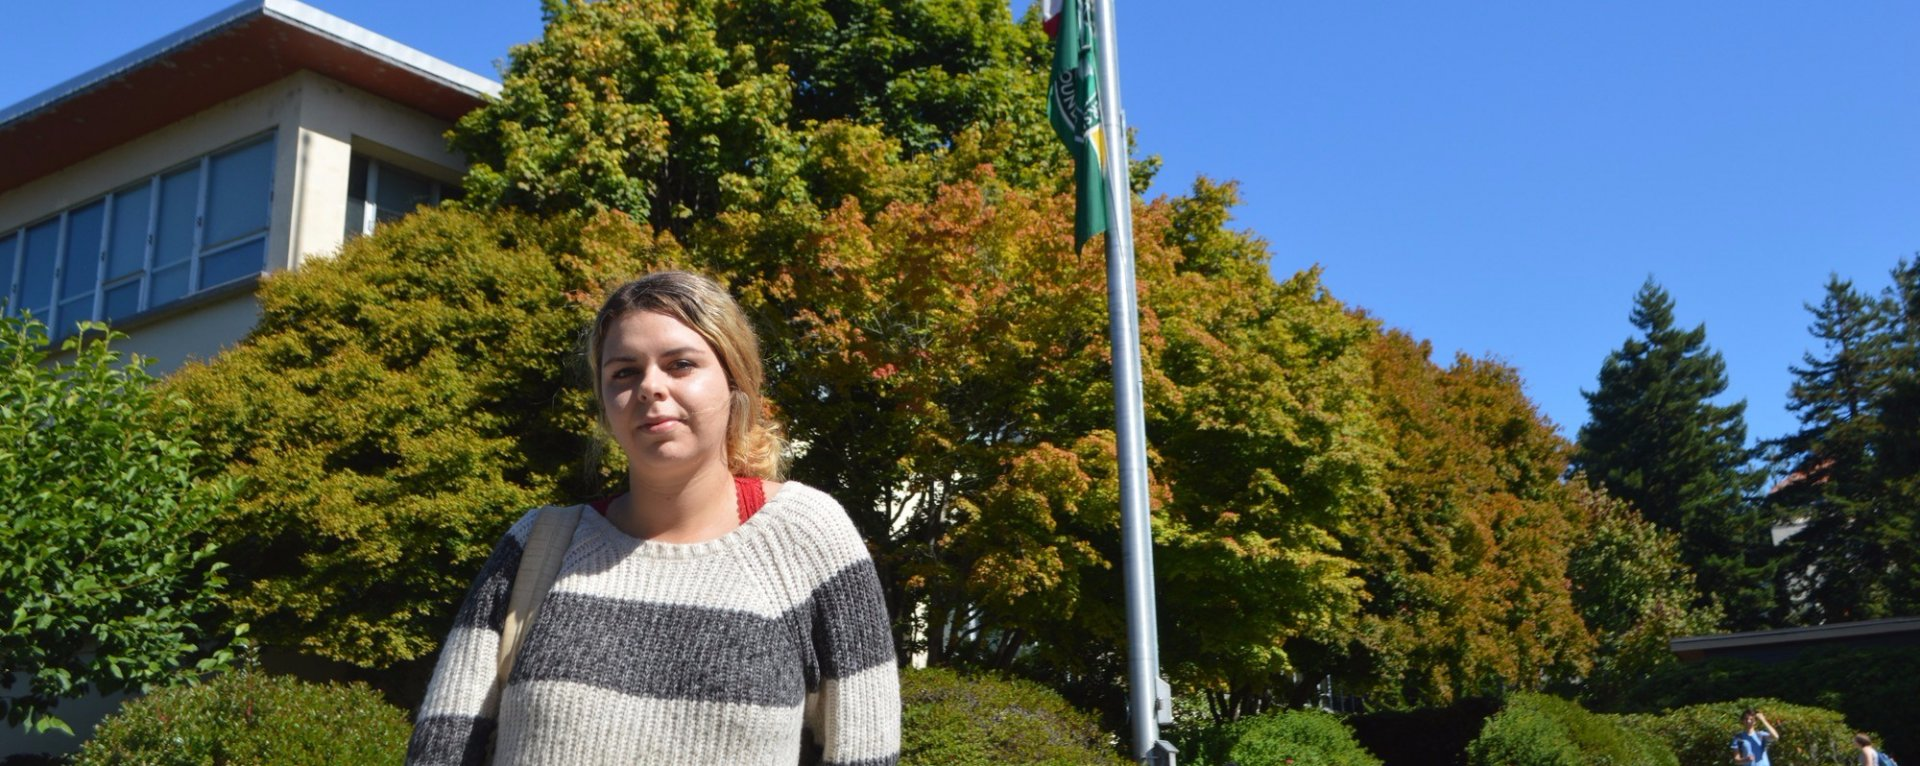 Macy Suchan, 23-year-old senior at HSU stands in front of the half-staff flag on Oct.2 2017. Photo credit: Lora Neshovska